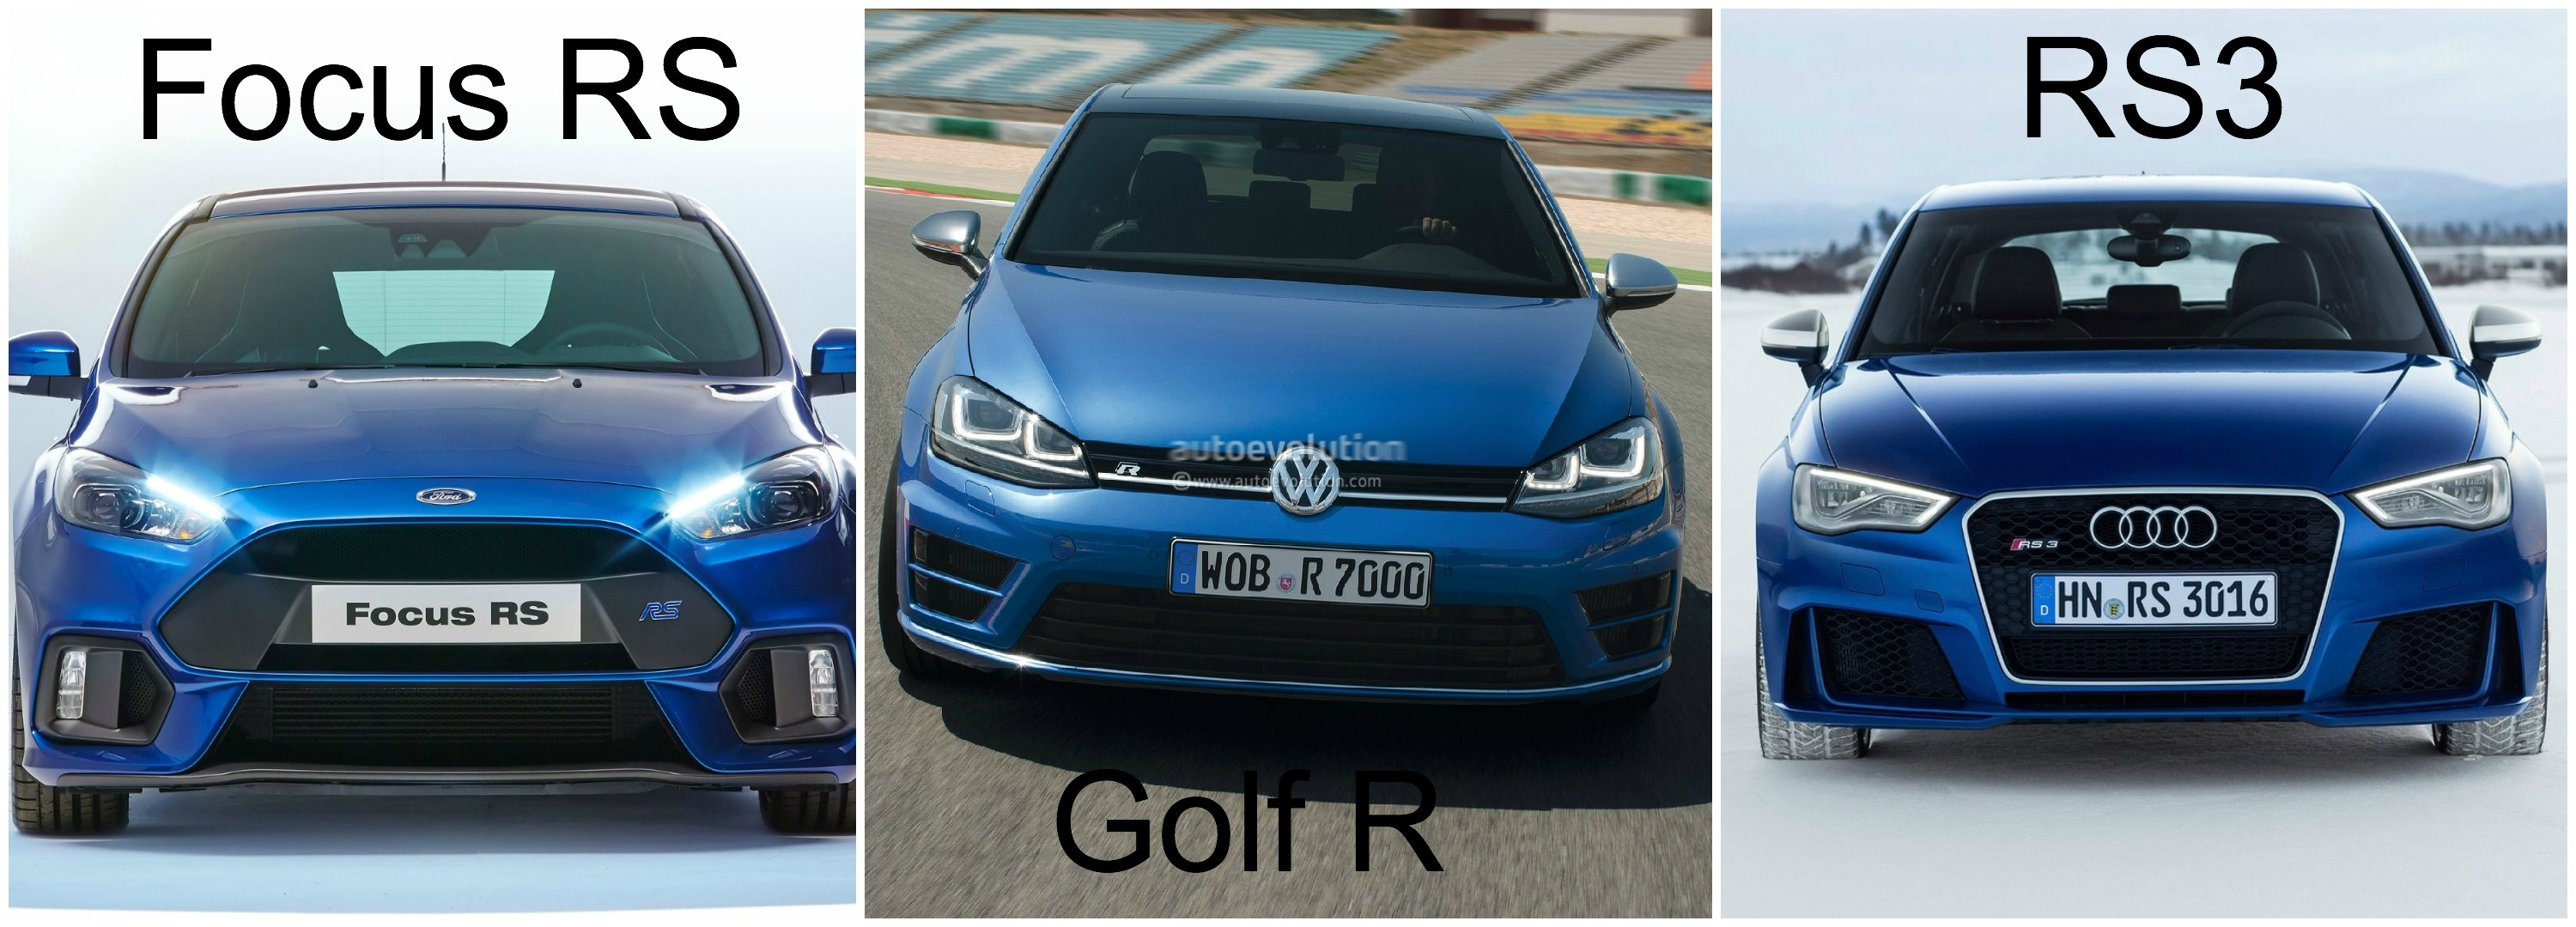 2016 Ford Focus Rs Vs Golf R And Audi Rs3 Hyper Hatch Photo  parison 91887 as well Mercedes Sprinter Van By Lexani Motorcars Costs Almost 300000 Video Photo Gallery 54642 together with 2014 Citroen C4 Picasso 16 Hdi Chip Tuning By Shiftech 79832 additionally Lane Keeping Assist Systems Explained 25459 likewise Opel Corsa Review 2015. on ford logo evolution